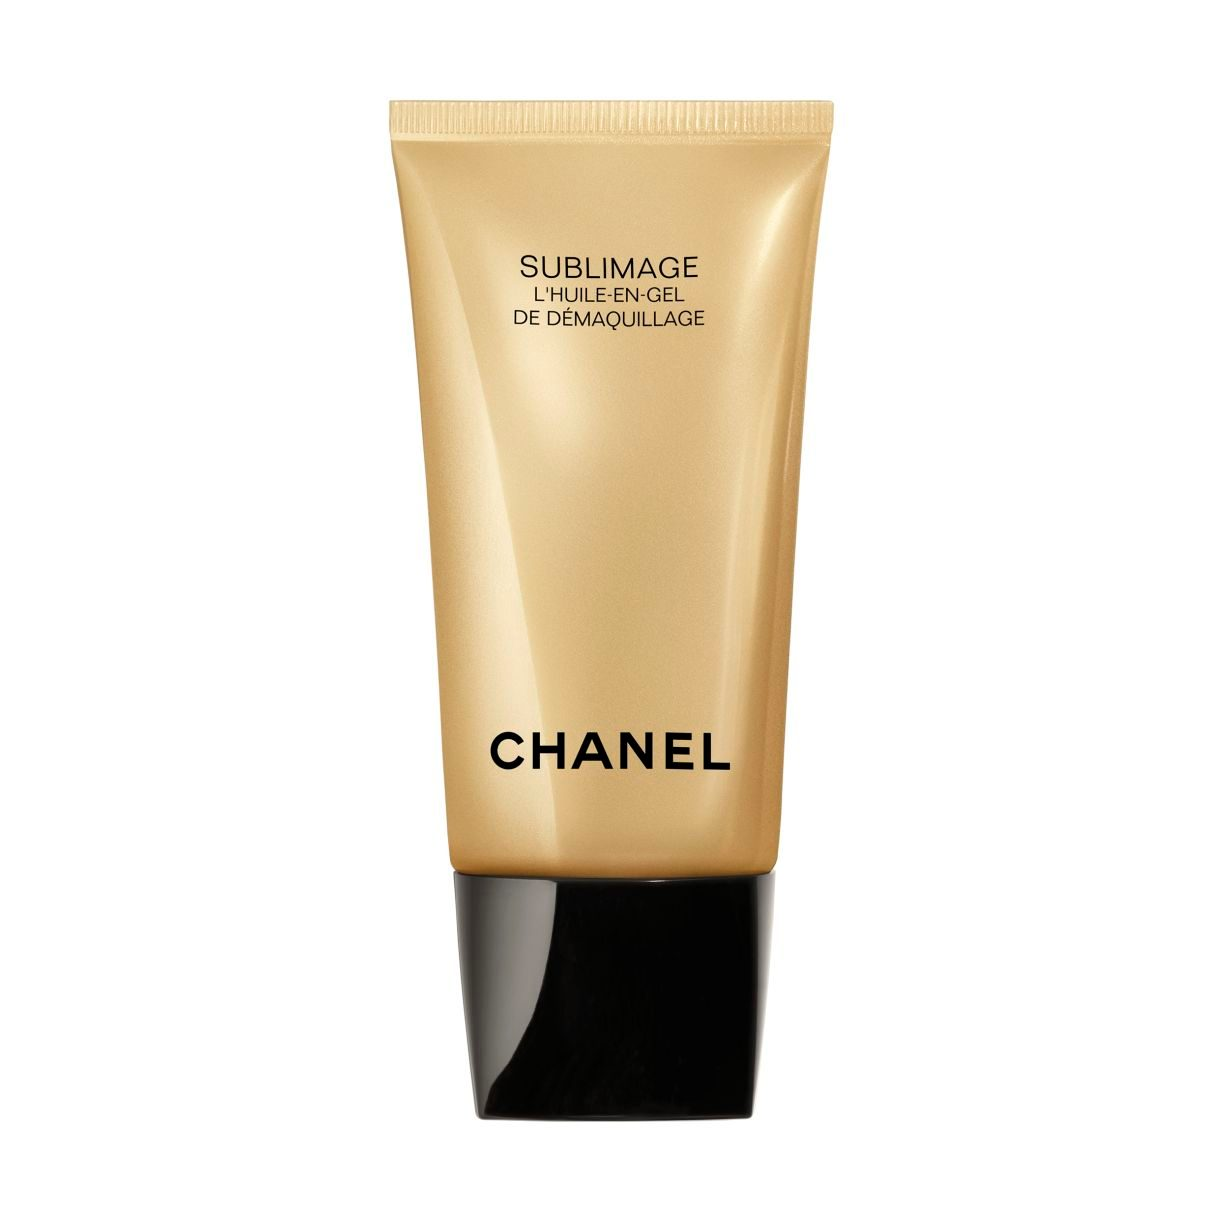 SUBLIMAGE L'HUILE-EN-GEL DE DEMAQUILLAGE ULTIMATE COMFORT AND RADIANCE-REVEALING GEL-TO-OIL CLEANSER 150ml